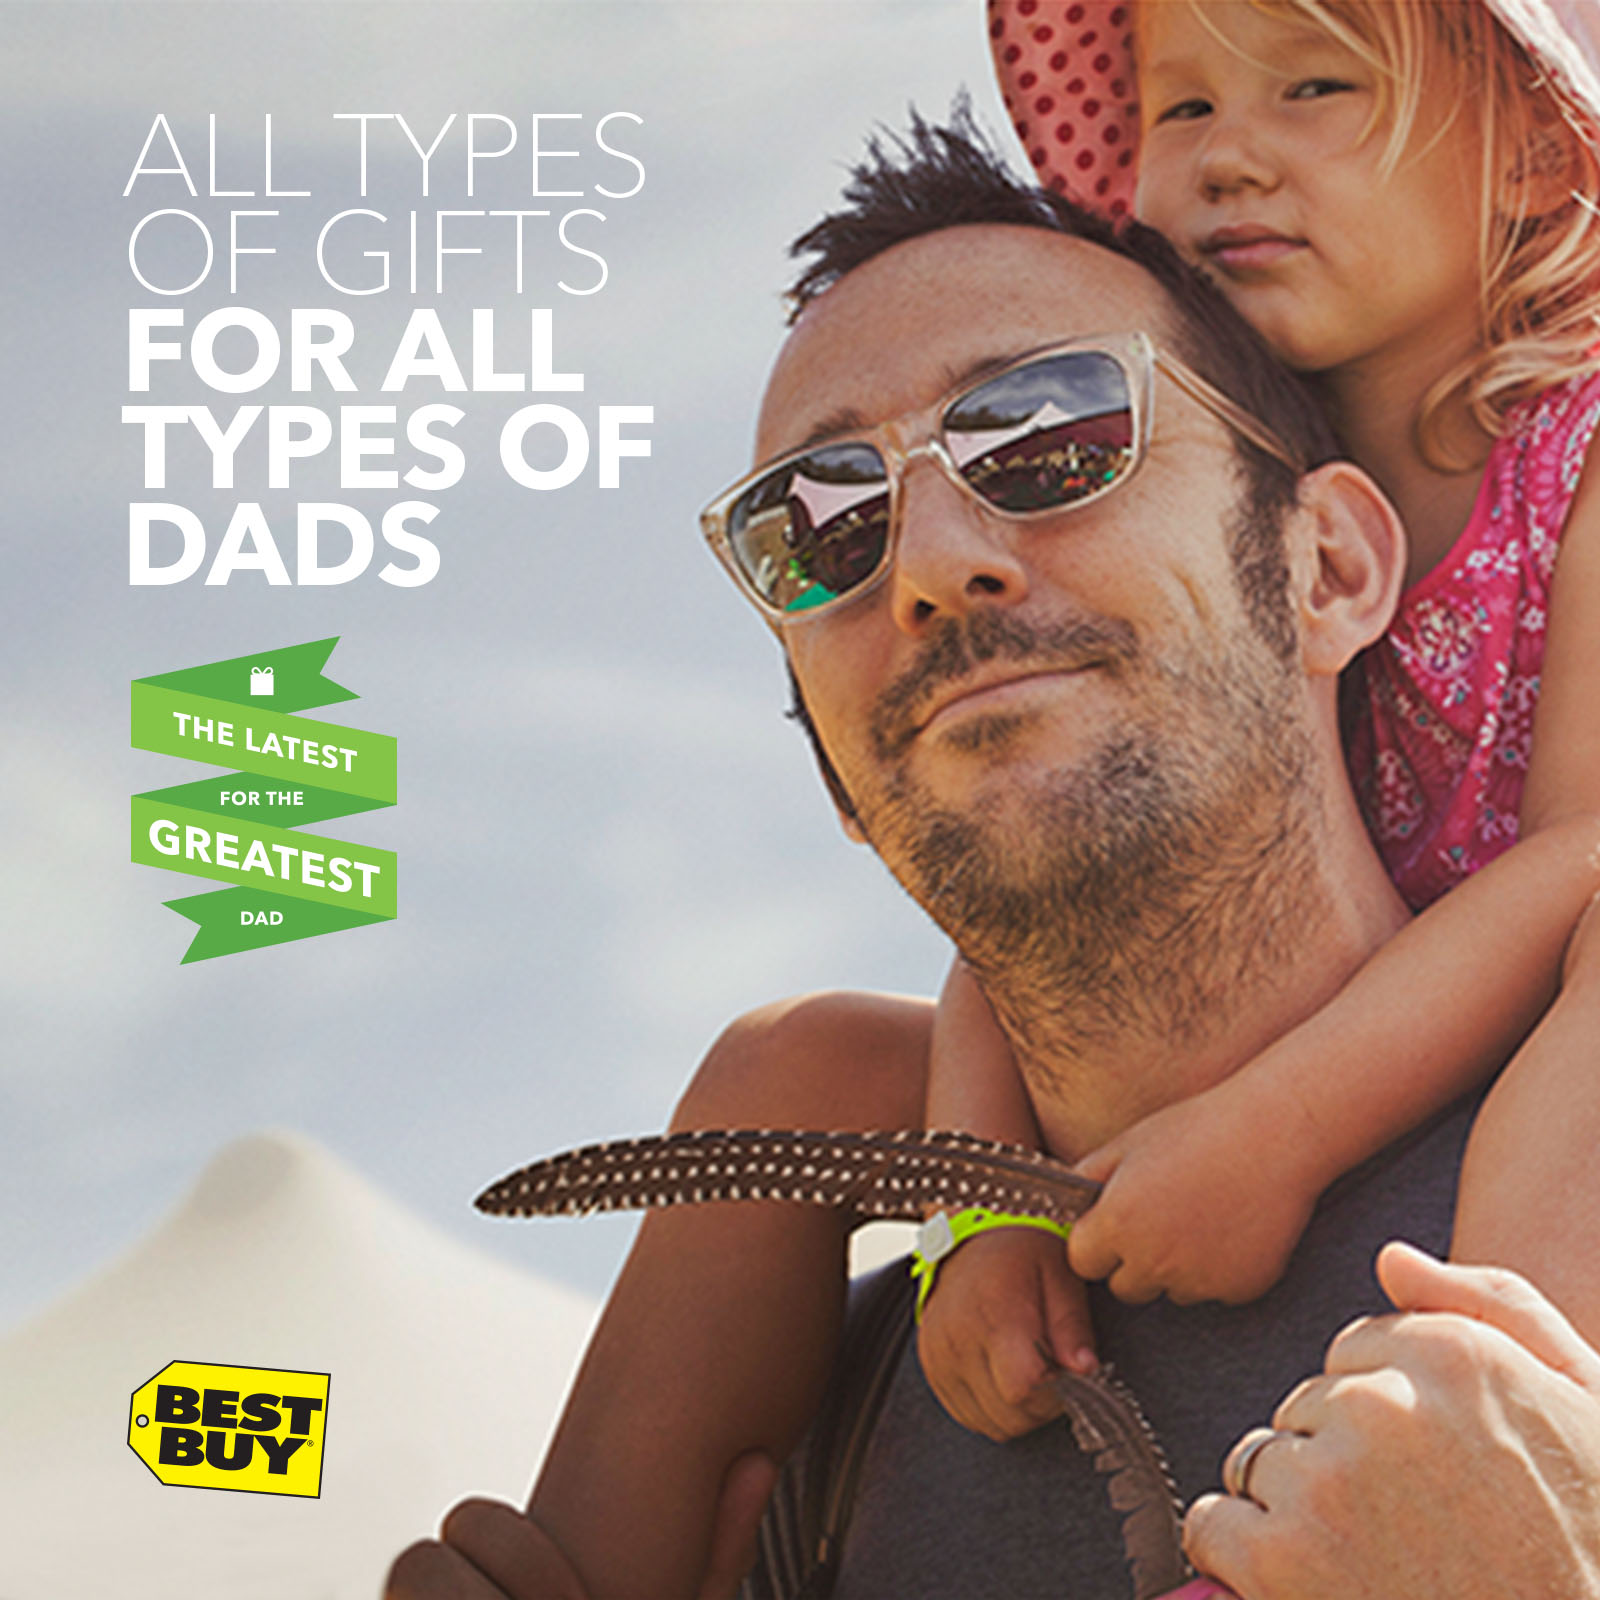 Where Will You Get Your Father's Day Gift This Year? I'll Be Shopping Best Buy